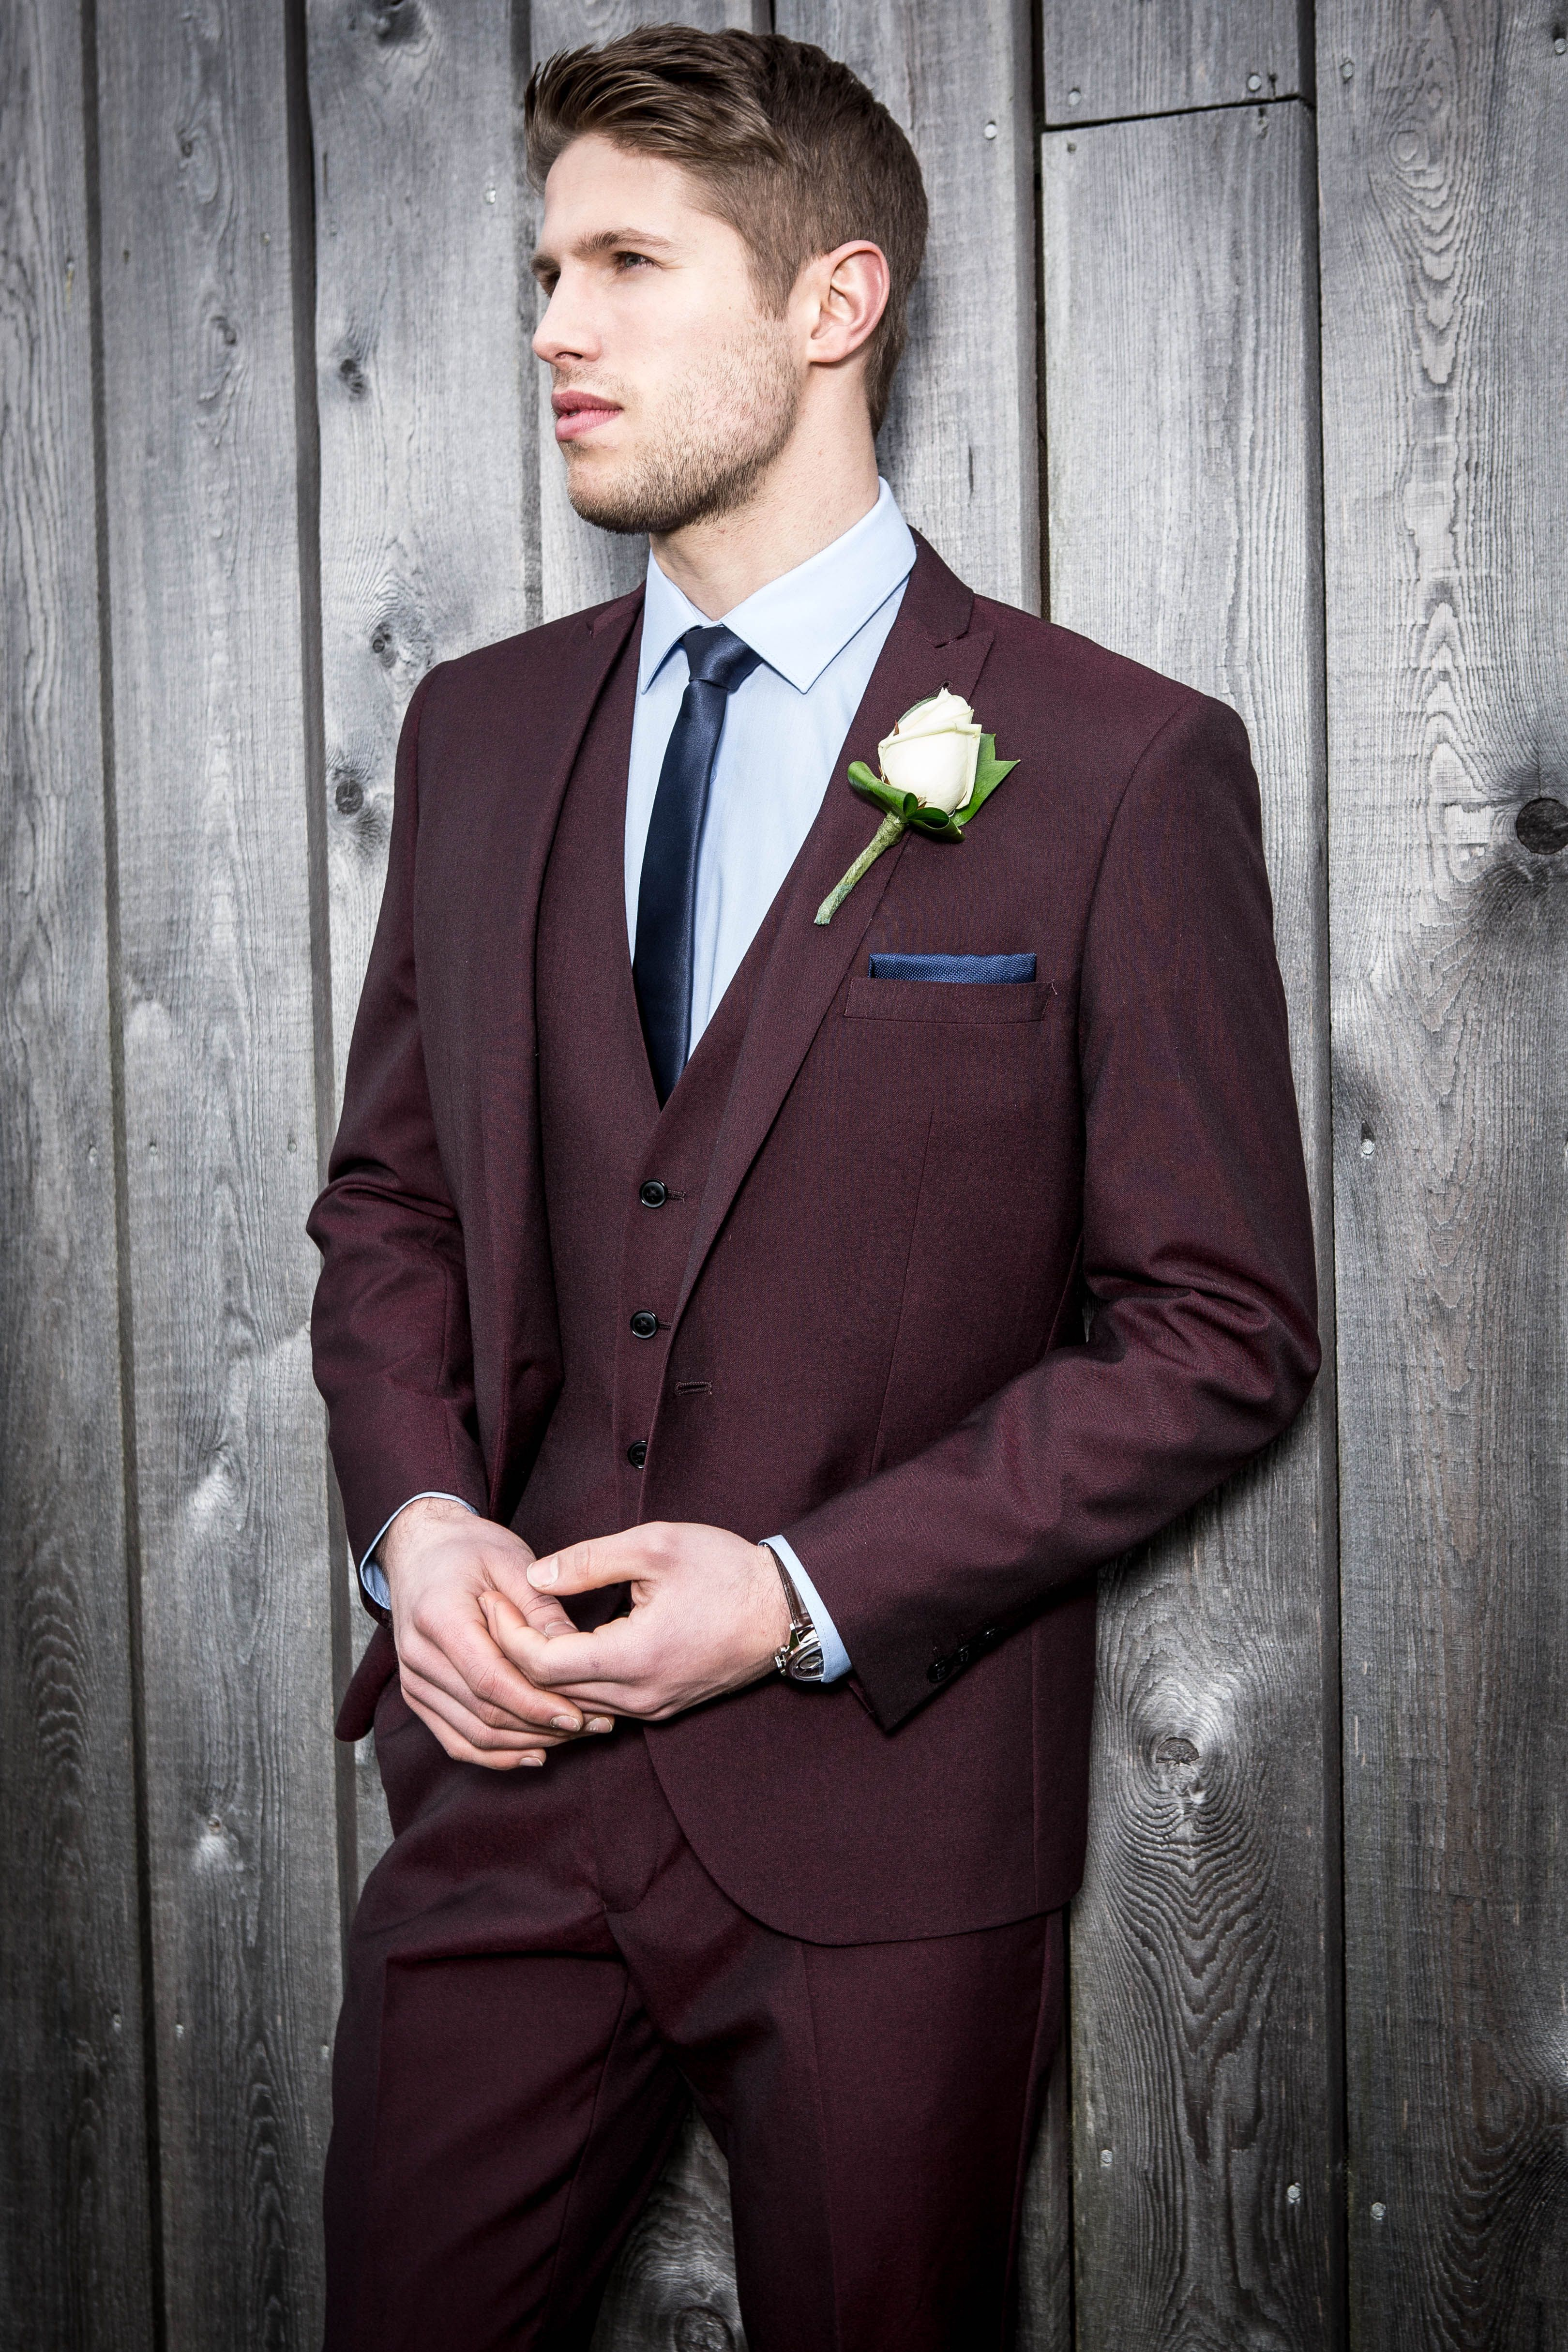 Stand out in this Burgundy Slim Fit Three Piece Suit from